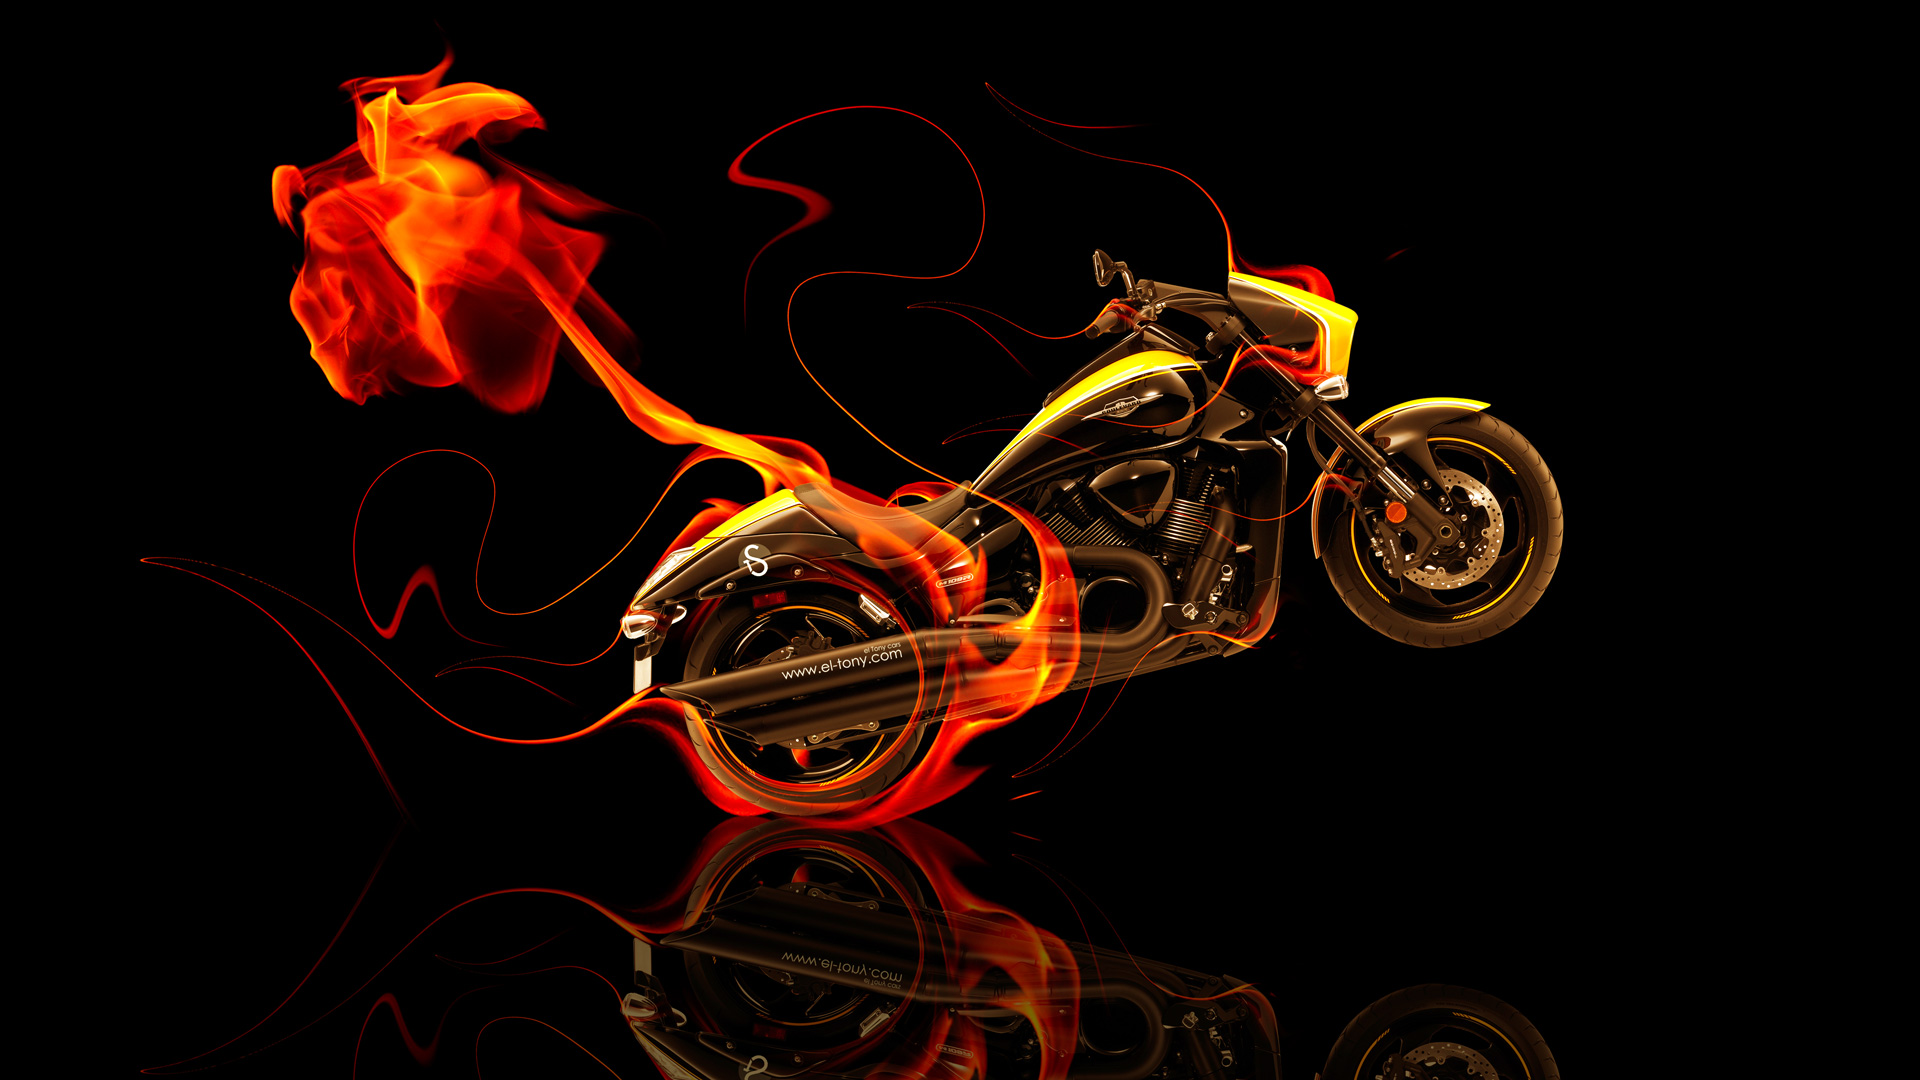 Beau Moto Suzuki M109 Side Fire Abstract Bike 2014